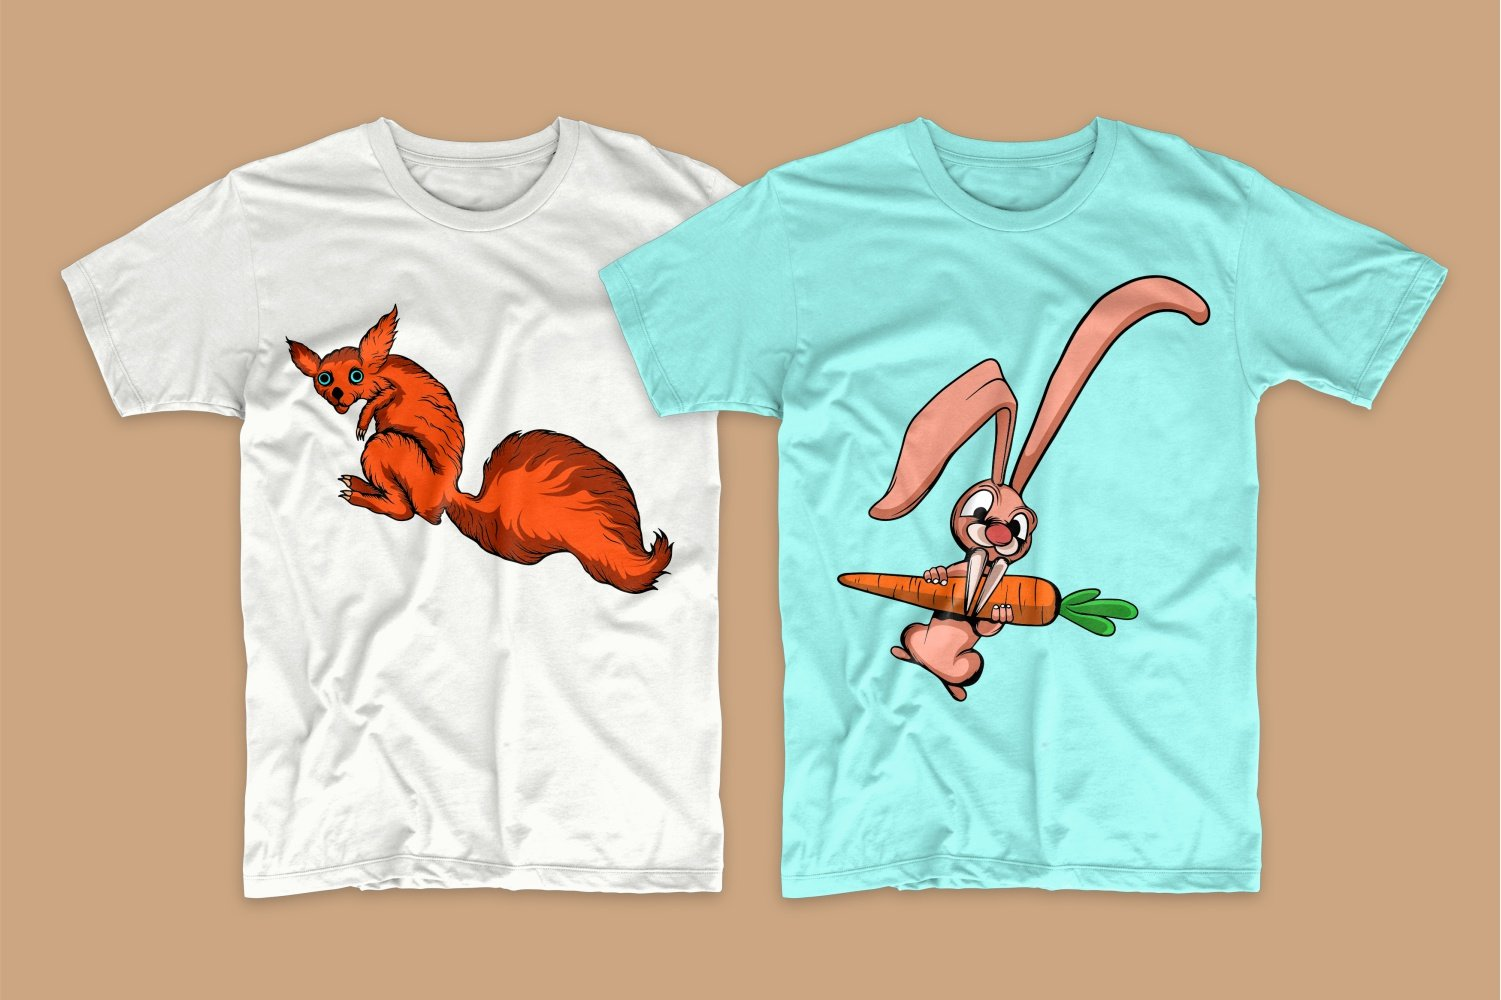 White T-shirt with a squirrel with a big tail and sky blue with a rabbit.